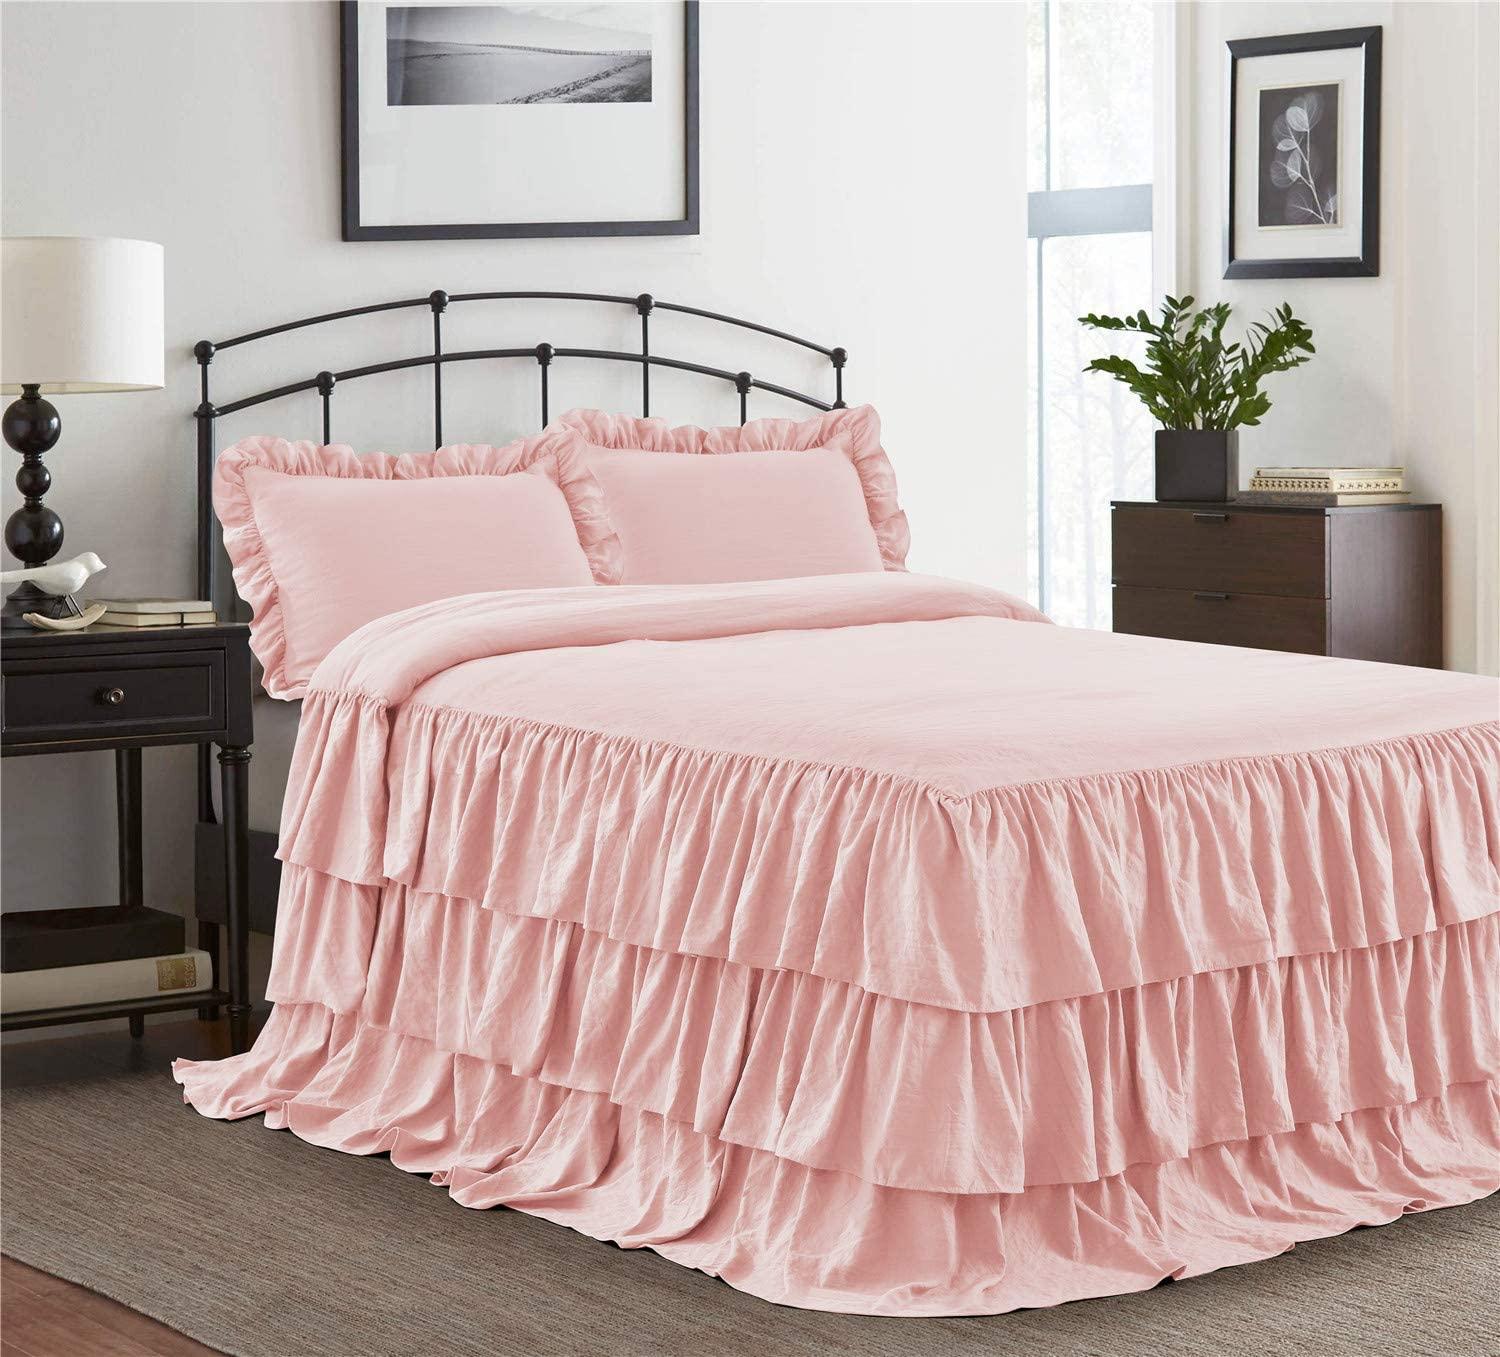 HIG 3 Piece Ruffle Skirt Bedspread Set King-Peach Pink Color 30 inches Drop Ruffled Style Bed Skirt Coverlets Bedspreads Dust Ruffles- Echo Bedding Collections King Size-1 Bedspread, 2 Standard Shams